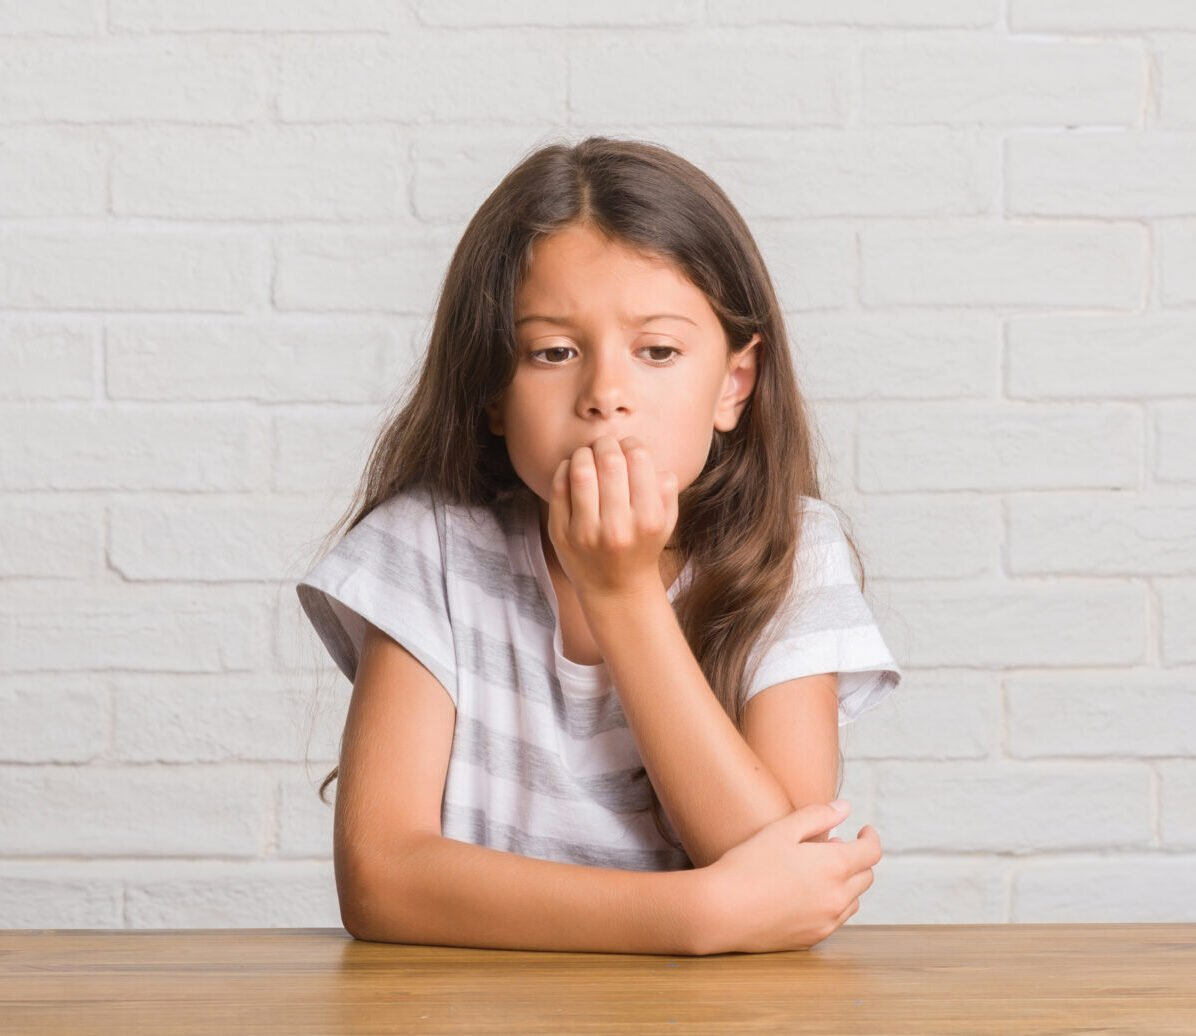 Stress Management Exercises for Anxious Children